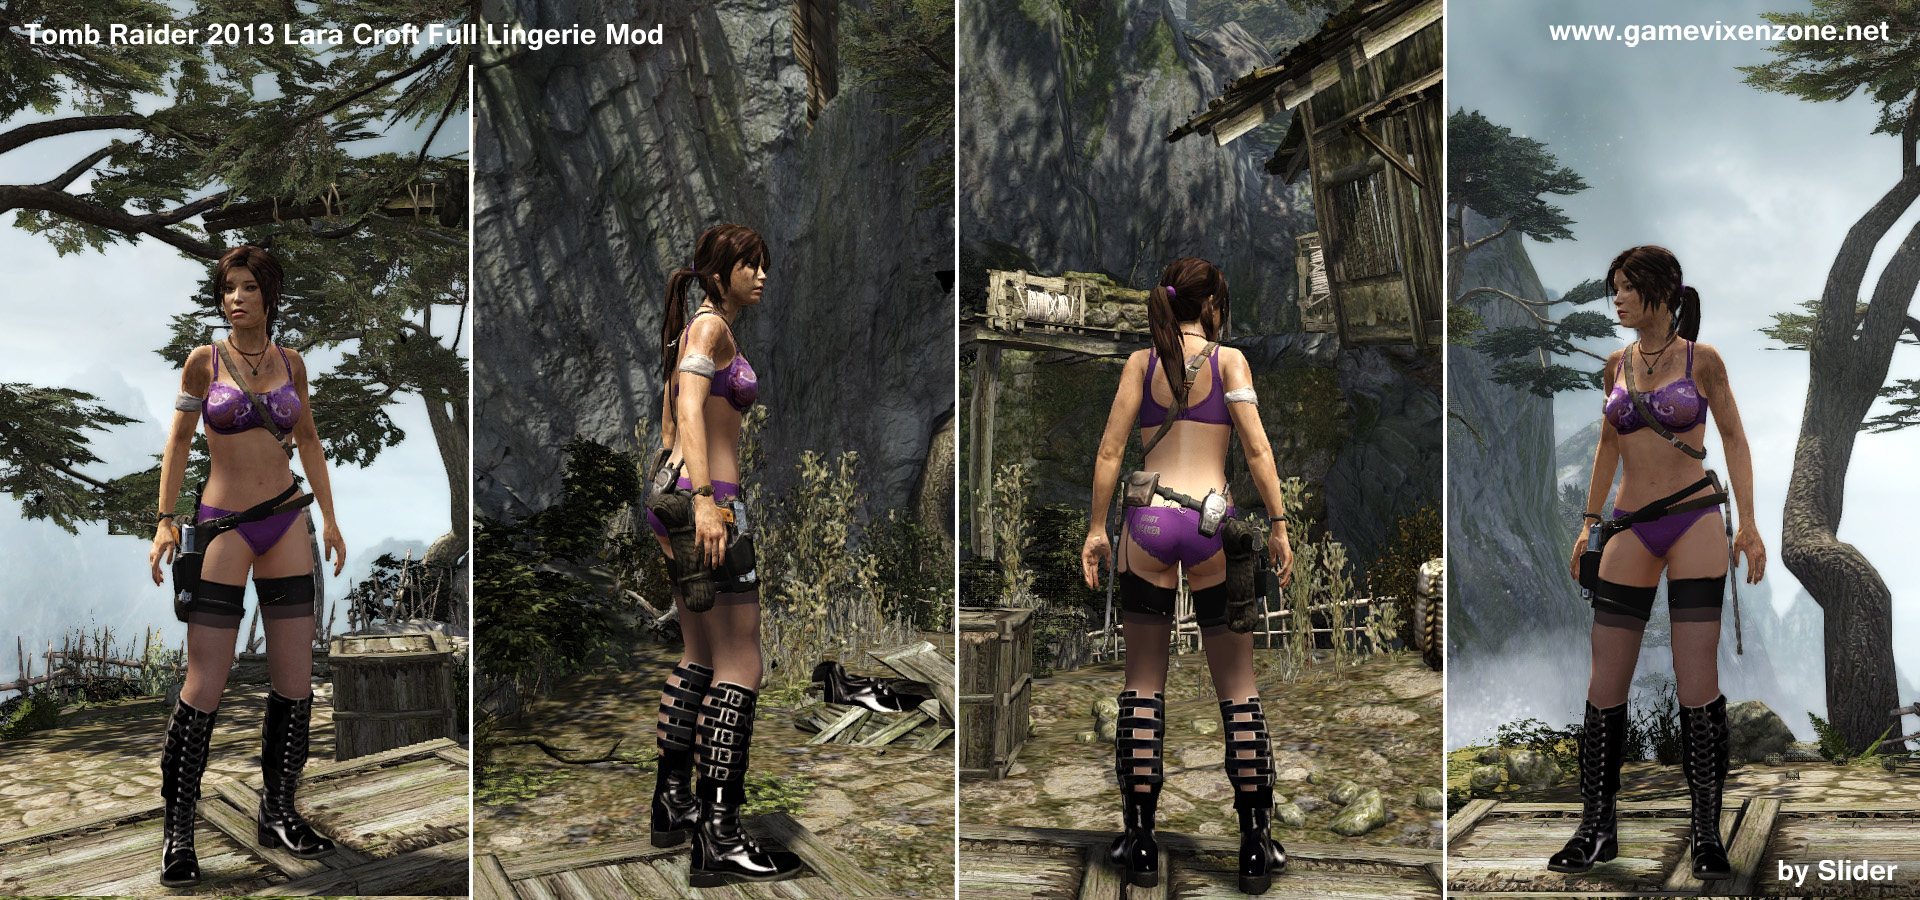 Tomb raider anniversary mod naked videos